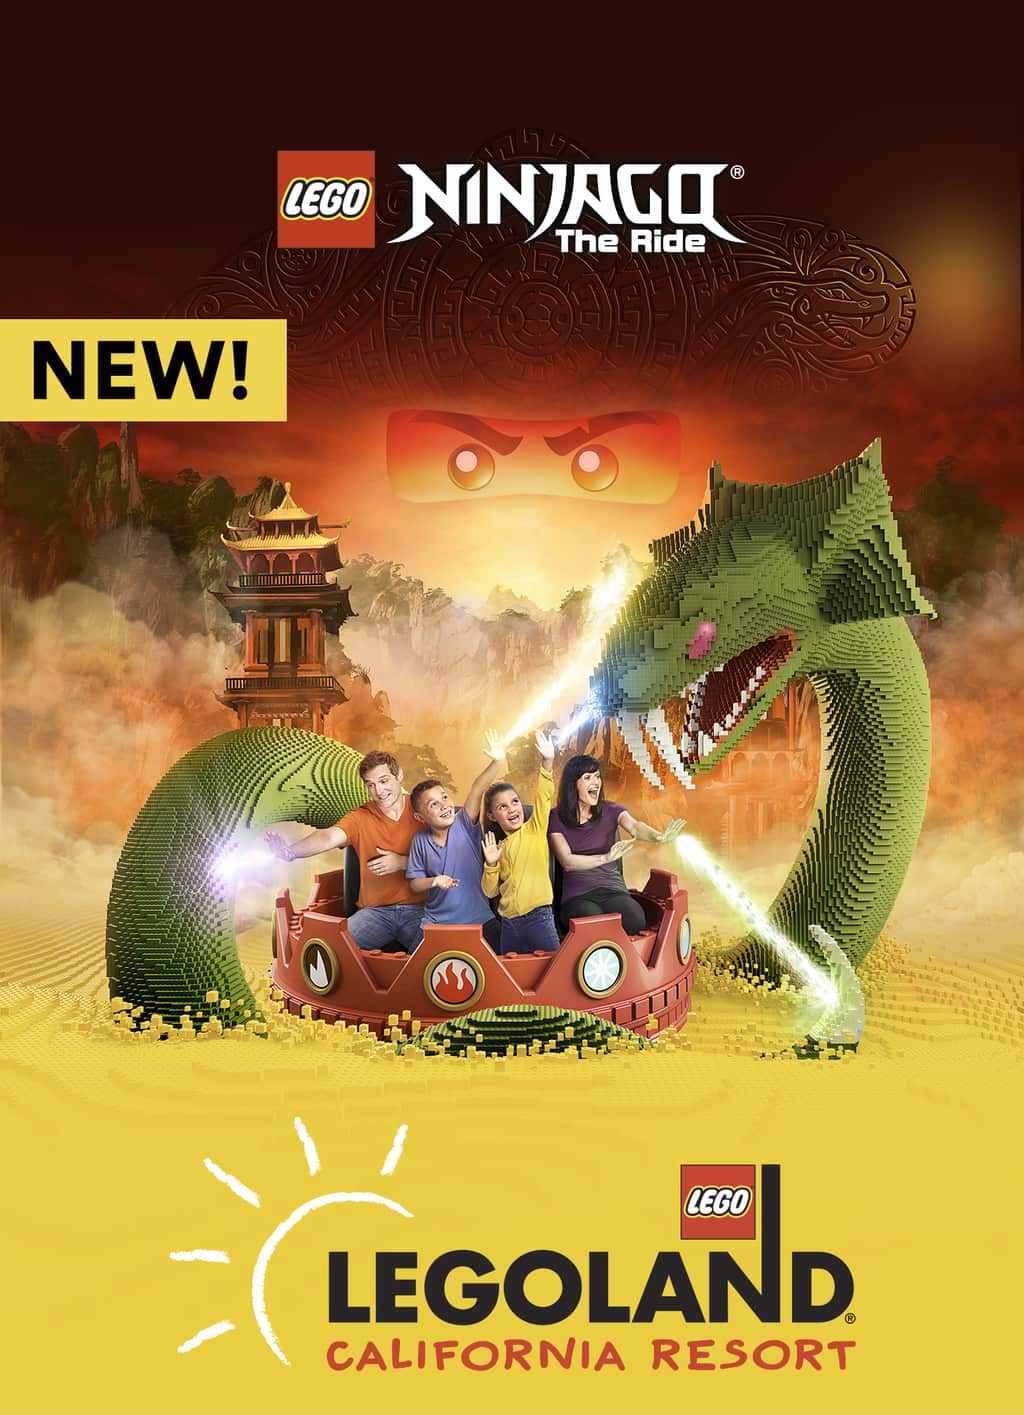 LEGO Ninjago The Ride